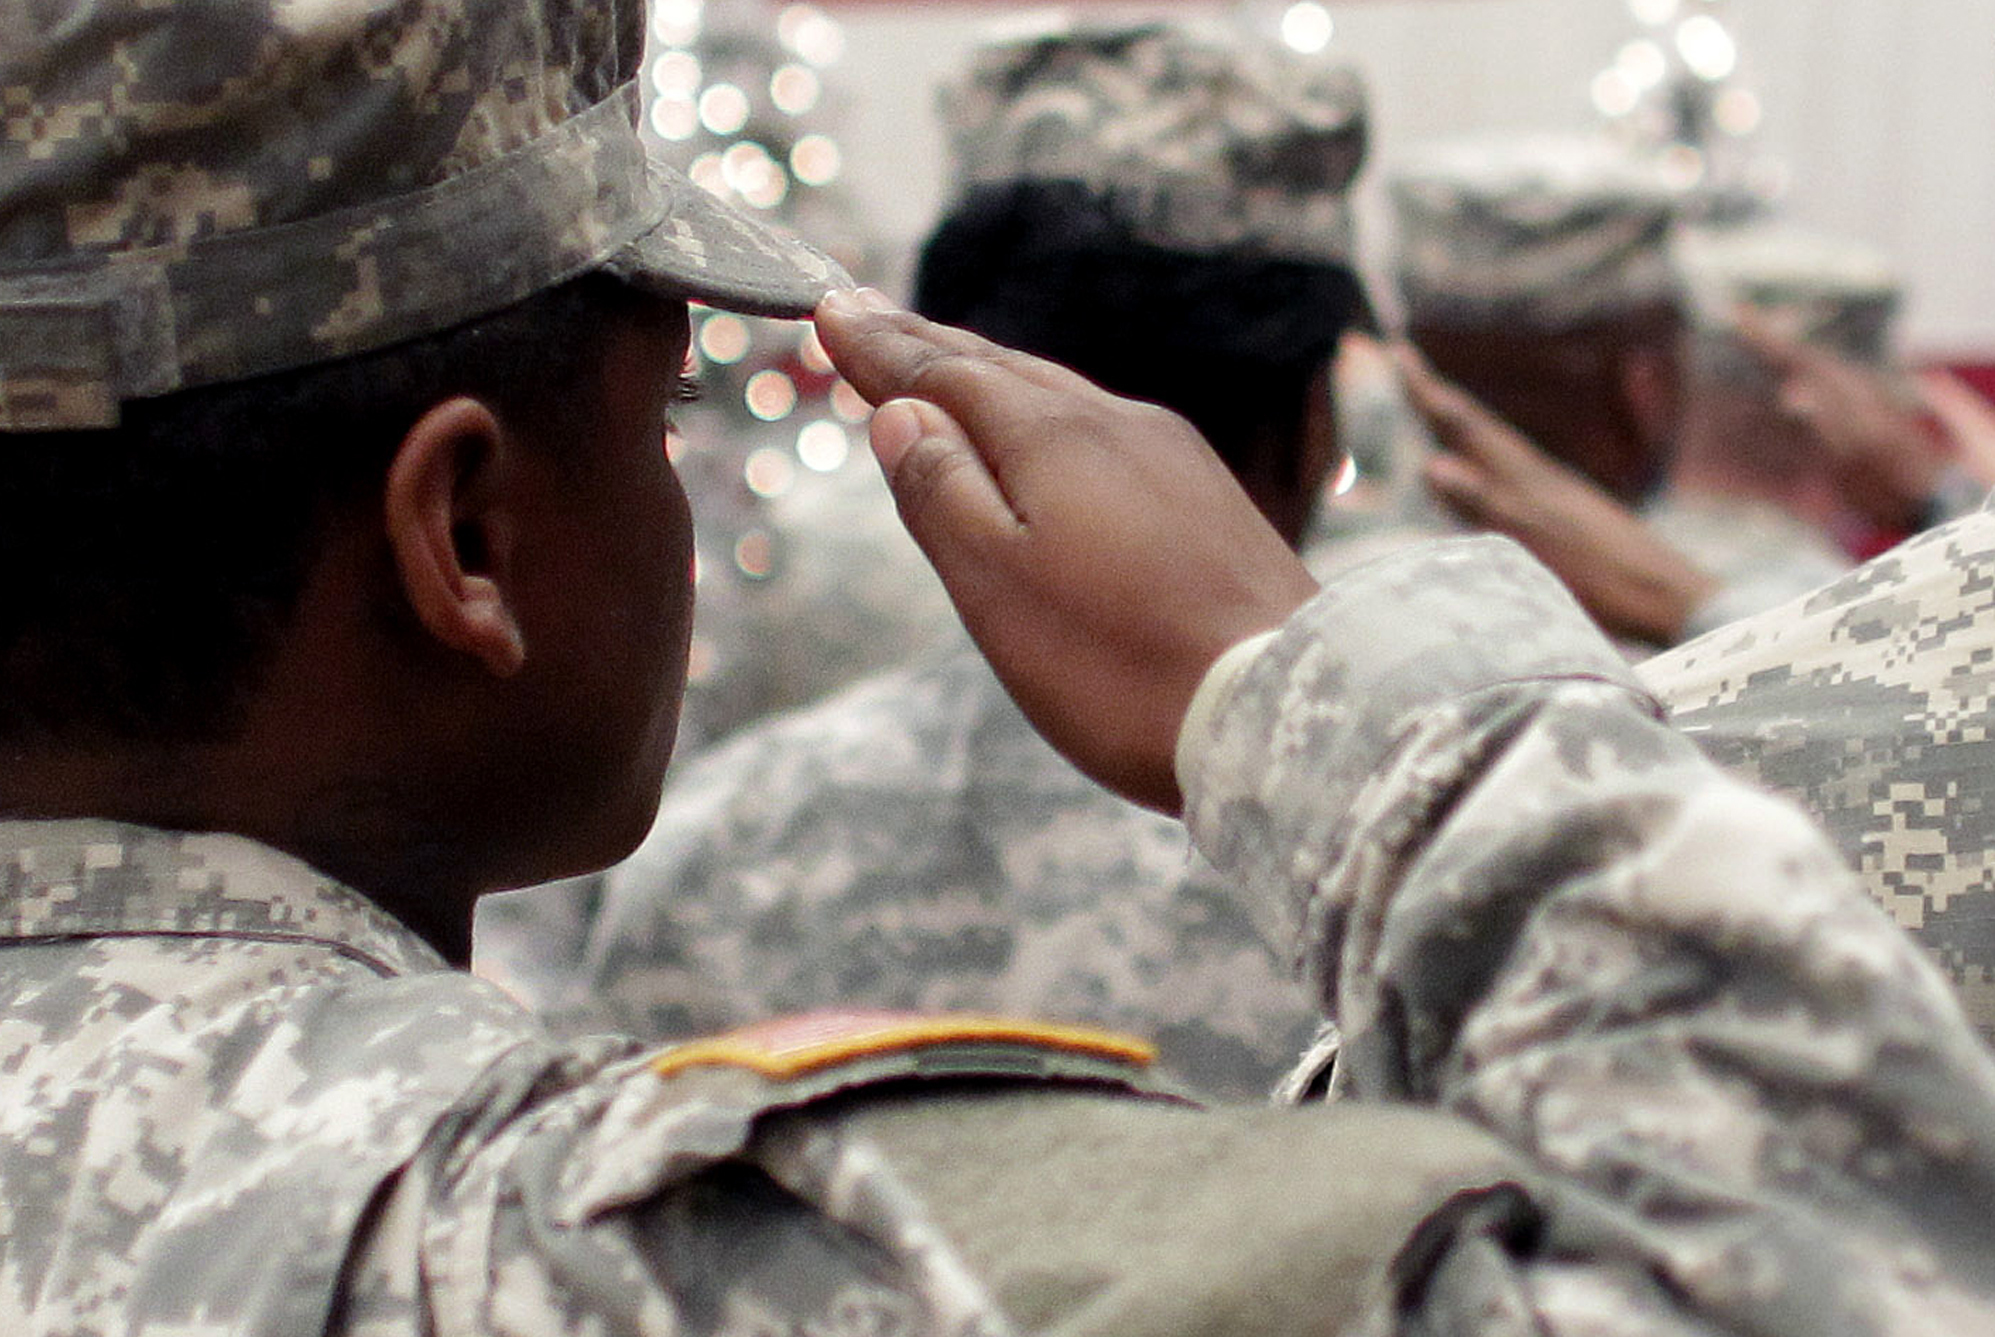 <p>In this Wednesday Dec. 5, 2012, file photo, soldiers salute the U.S. flag during the Pledge of Allegiance at a welcome home ceremony for soldiers returning from a deployment in Afghanistan, at Fort. Carson, Colo.</p>